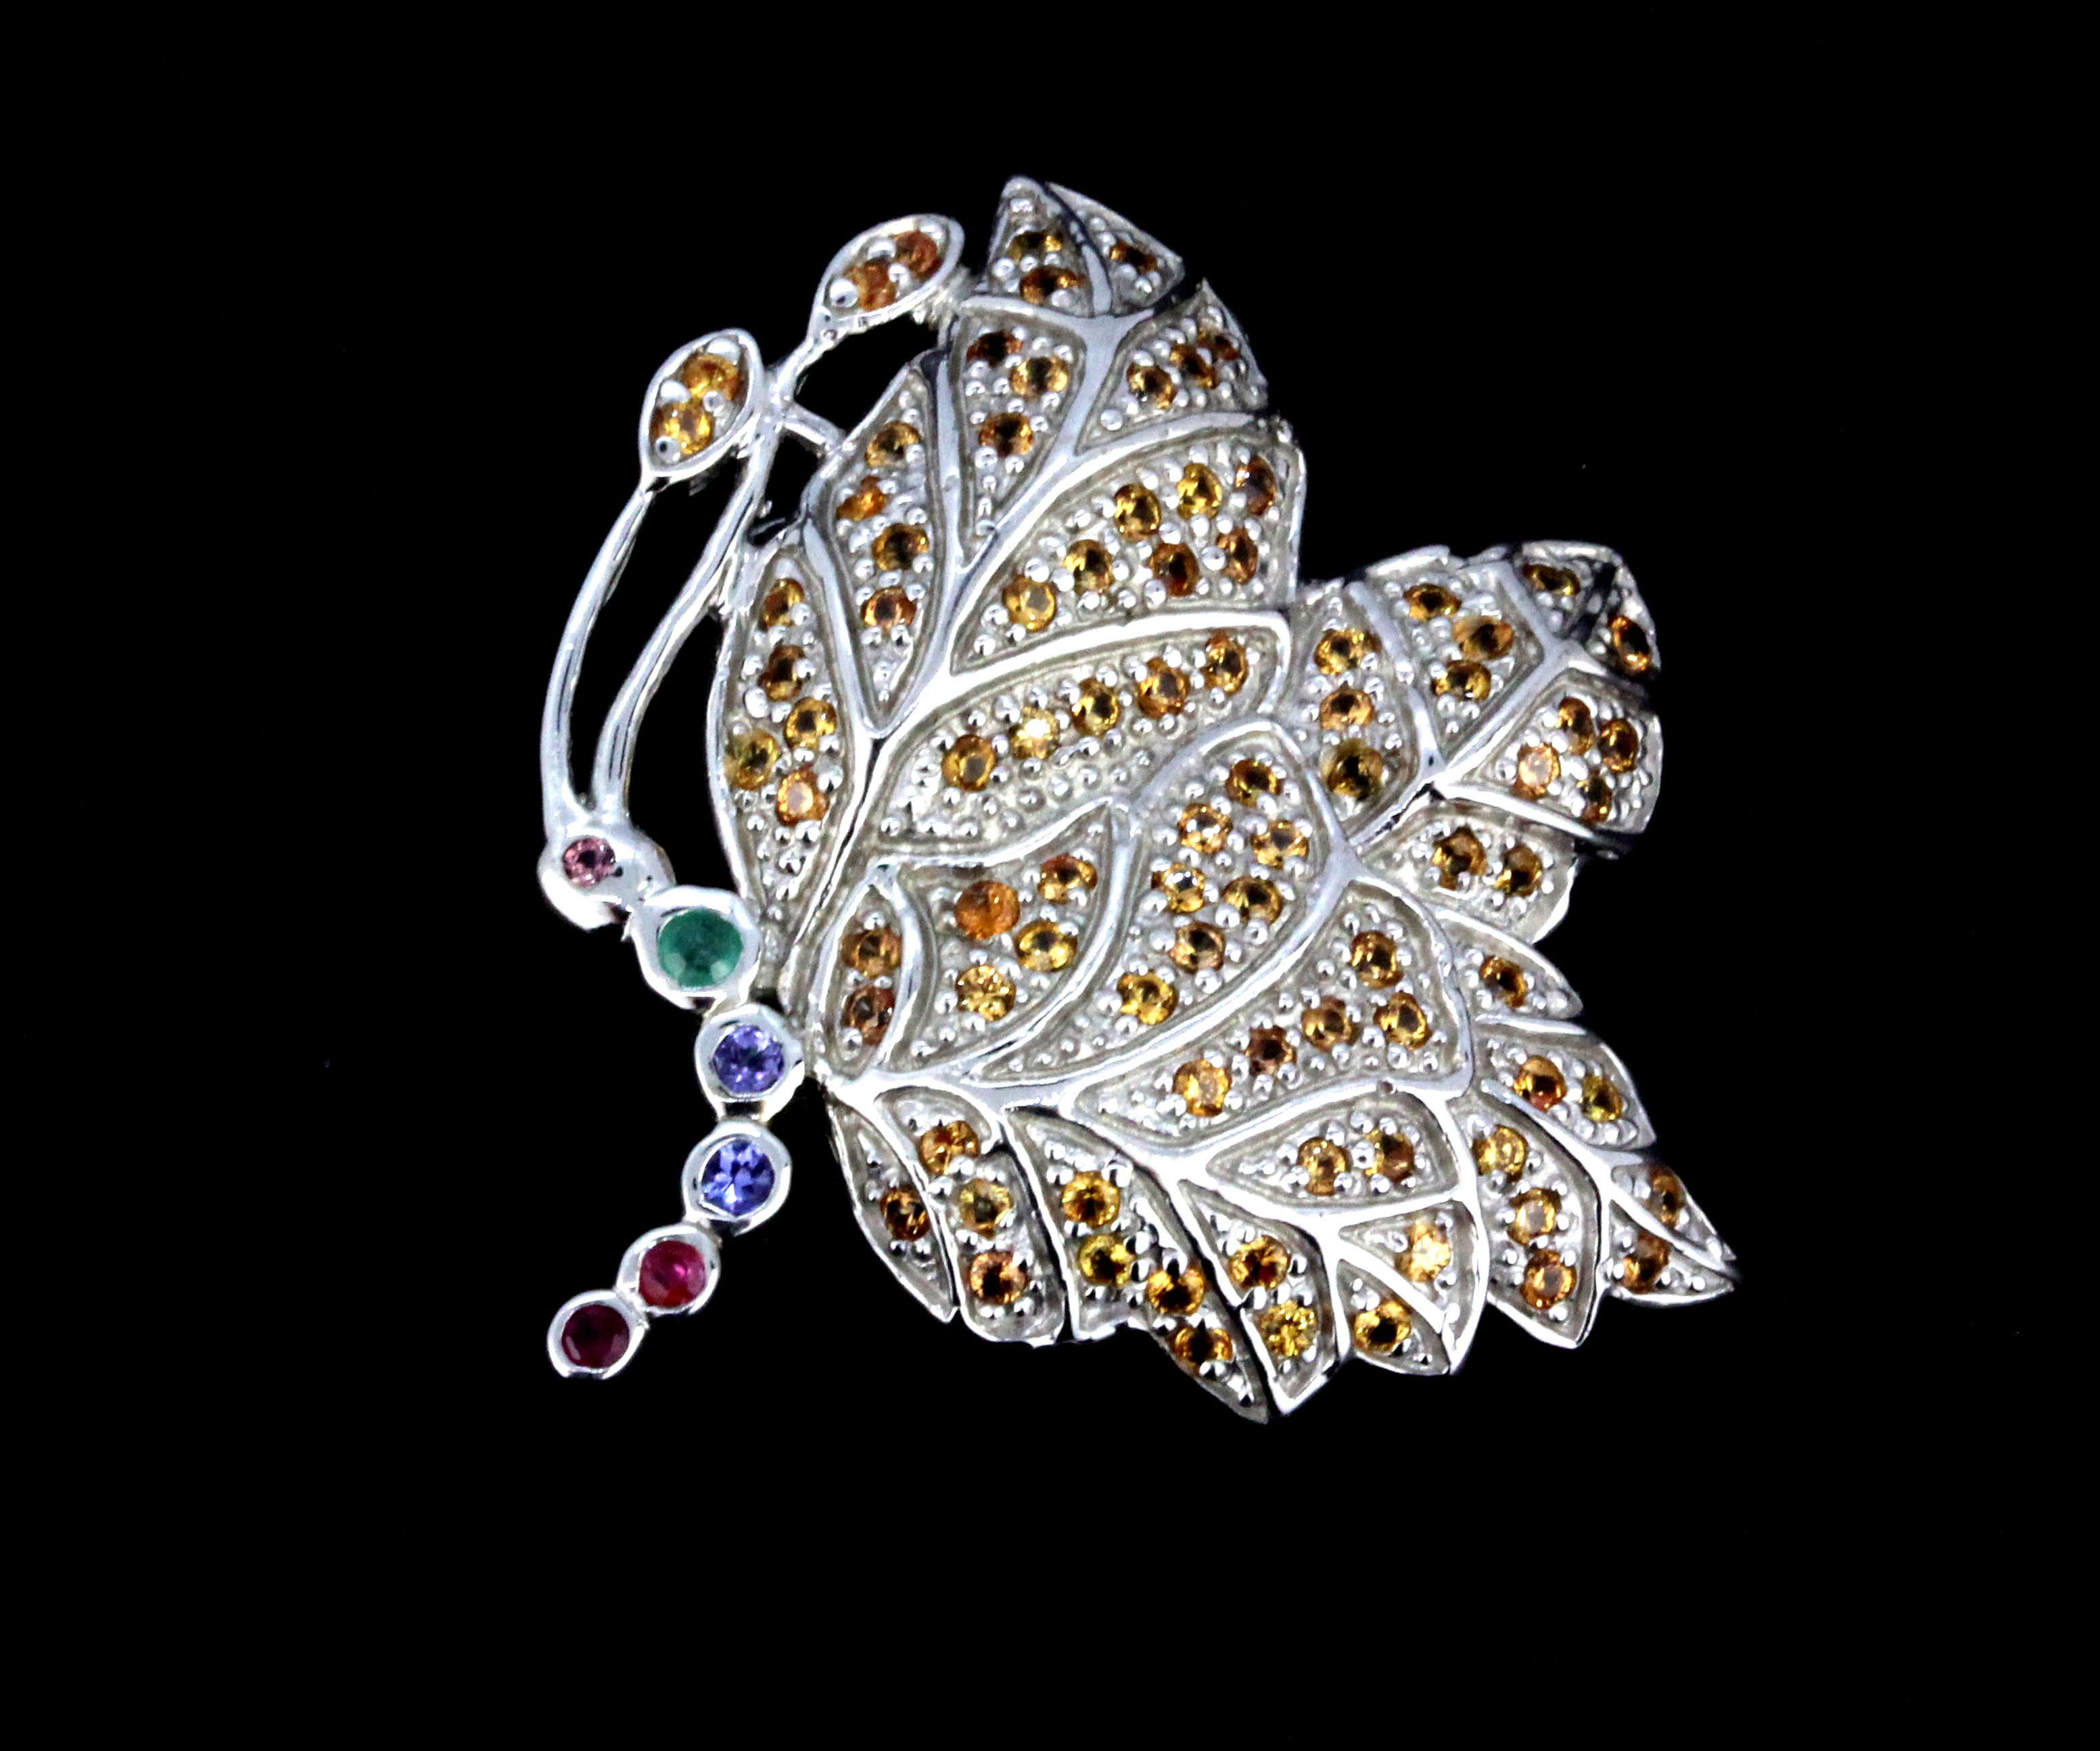 A 925 silver butterfly shaped brooch set with yellow sapphires, emerald, tanzanite and rubies, L.